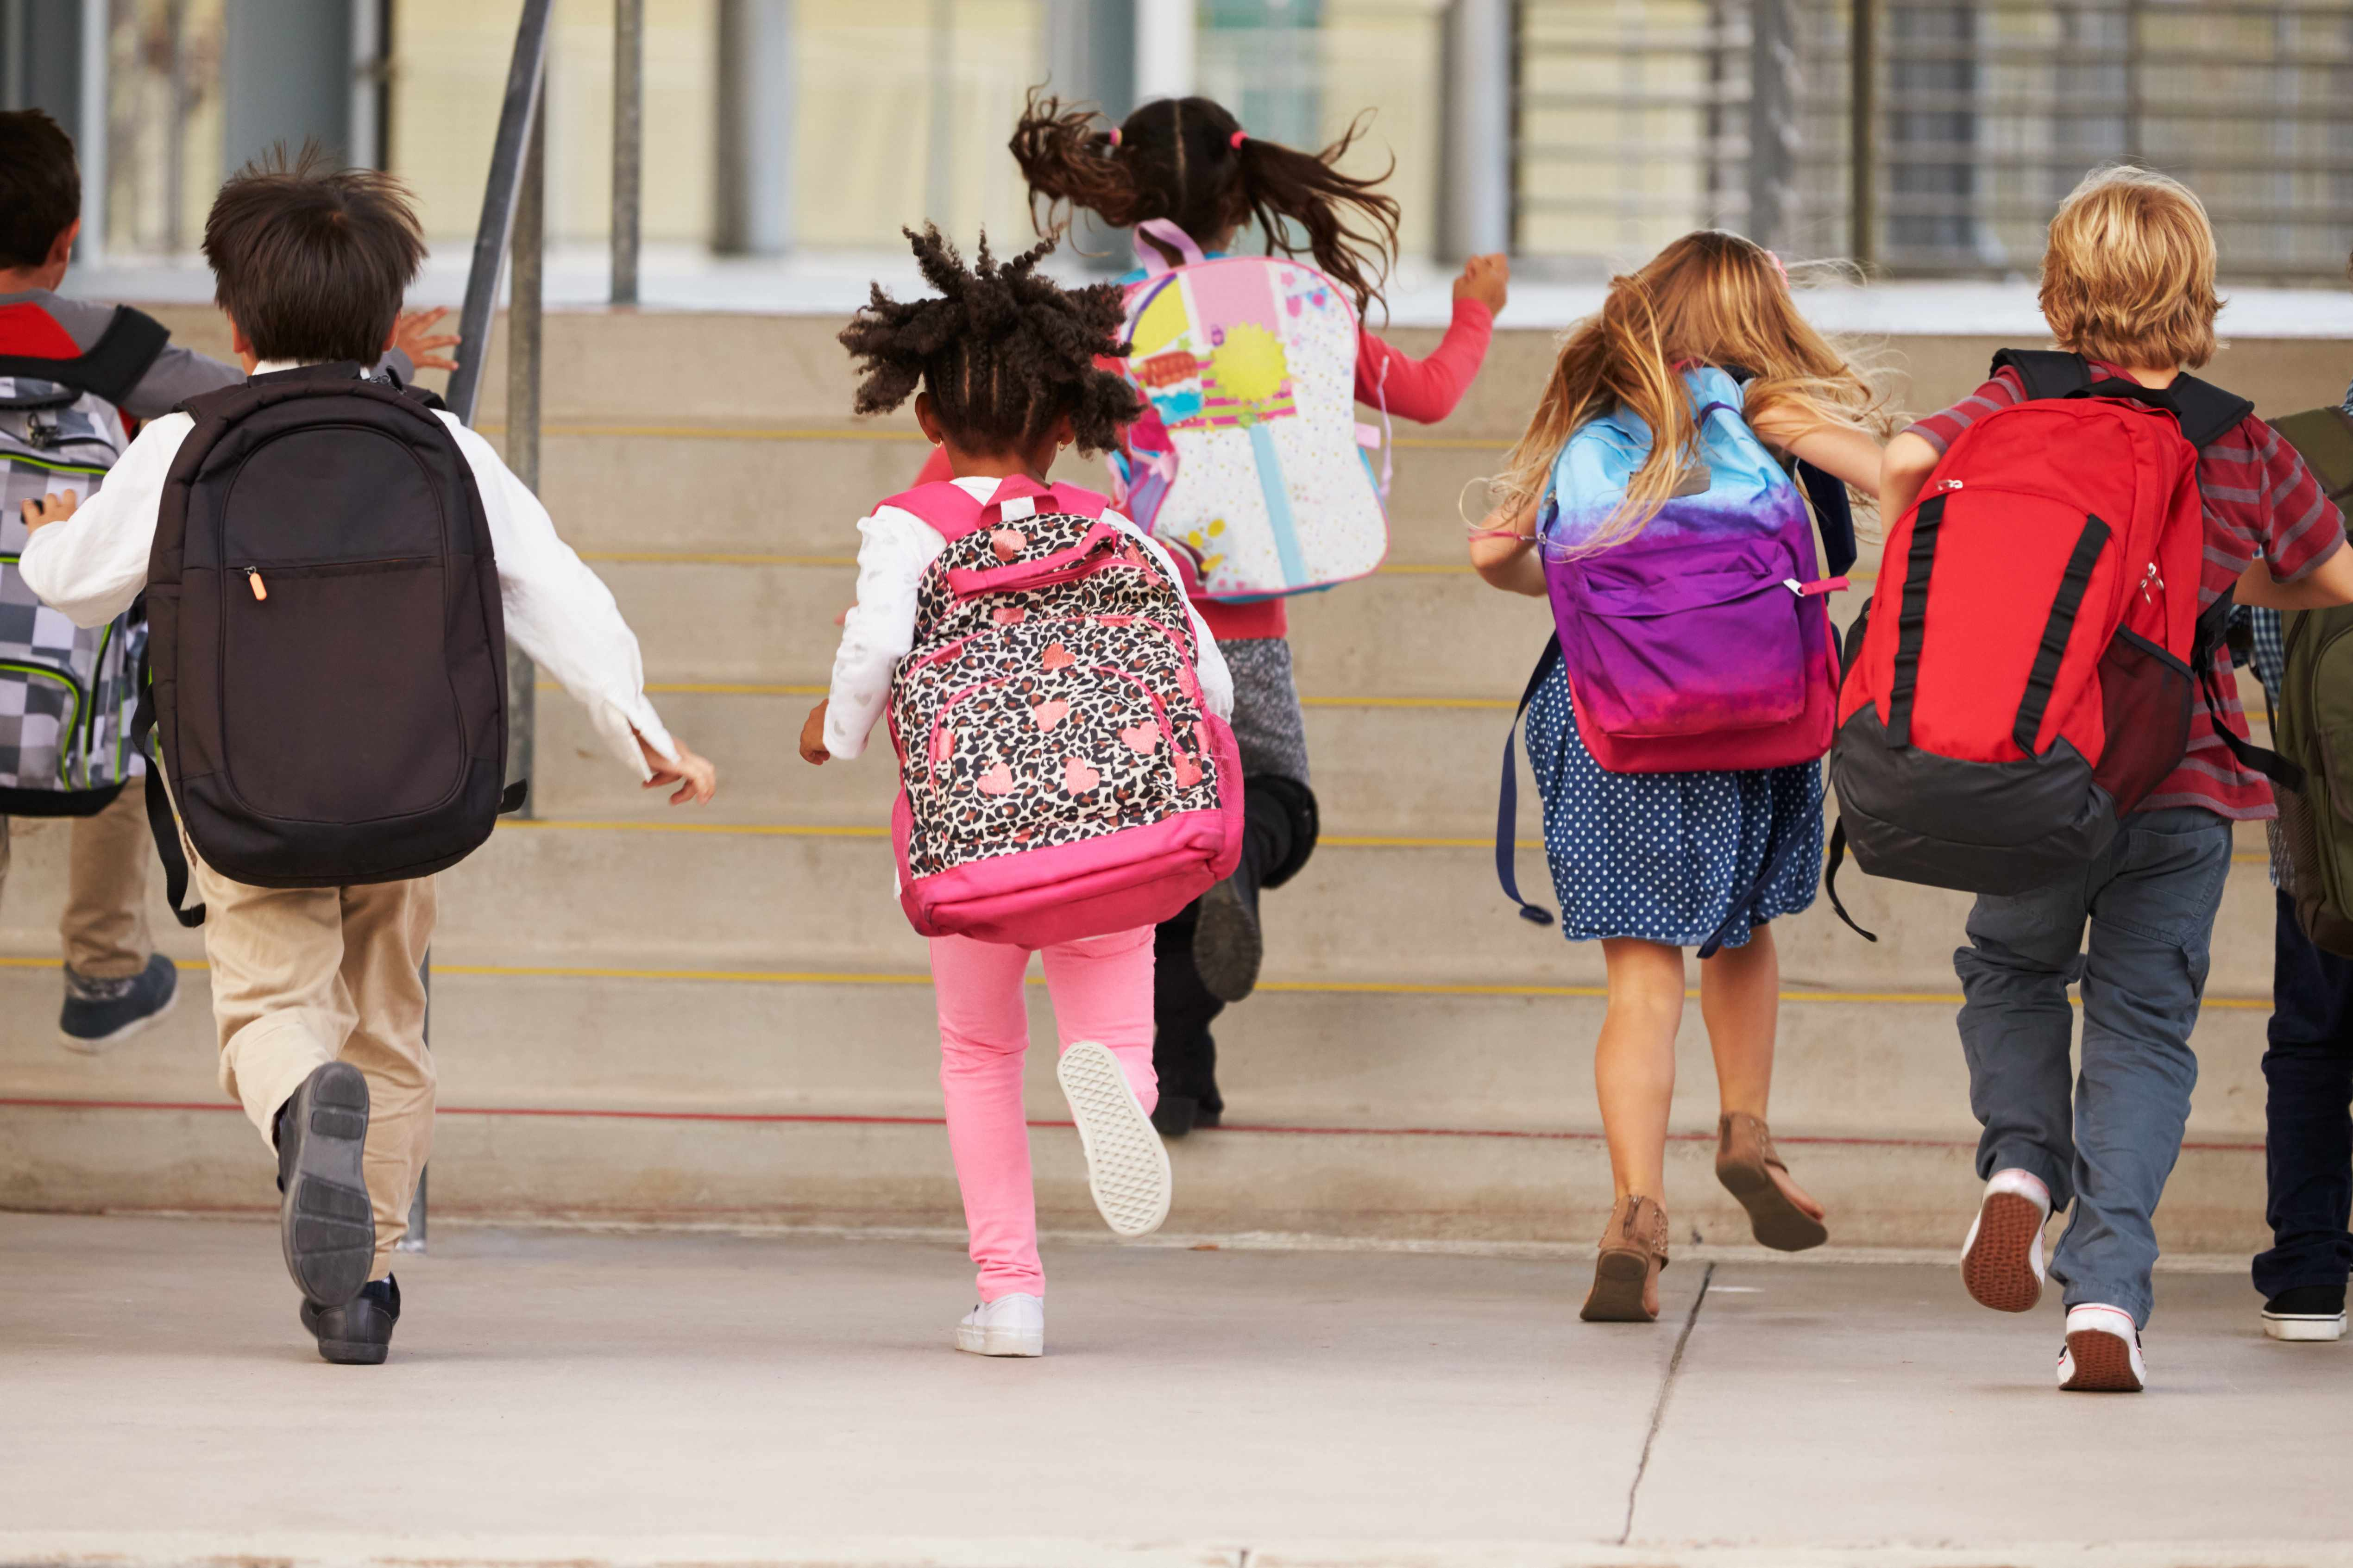 a group of elementary students running up the stairs wearing backpacks